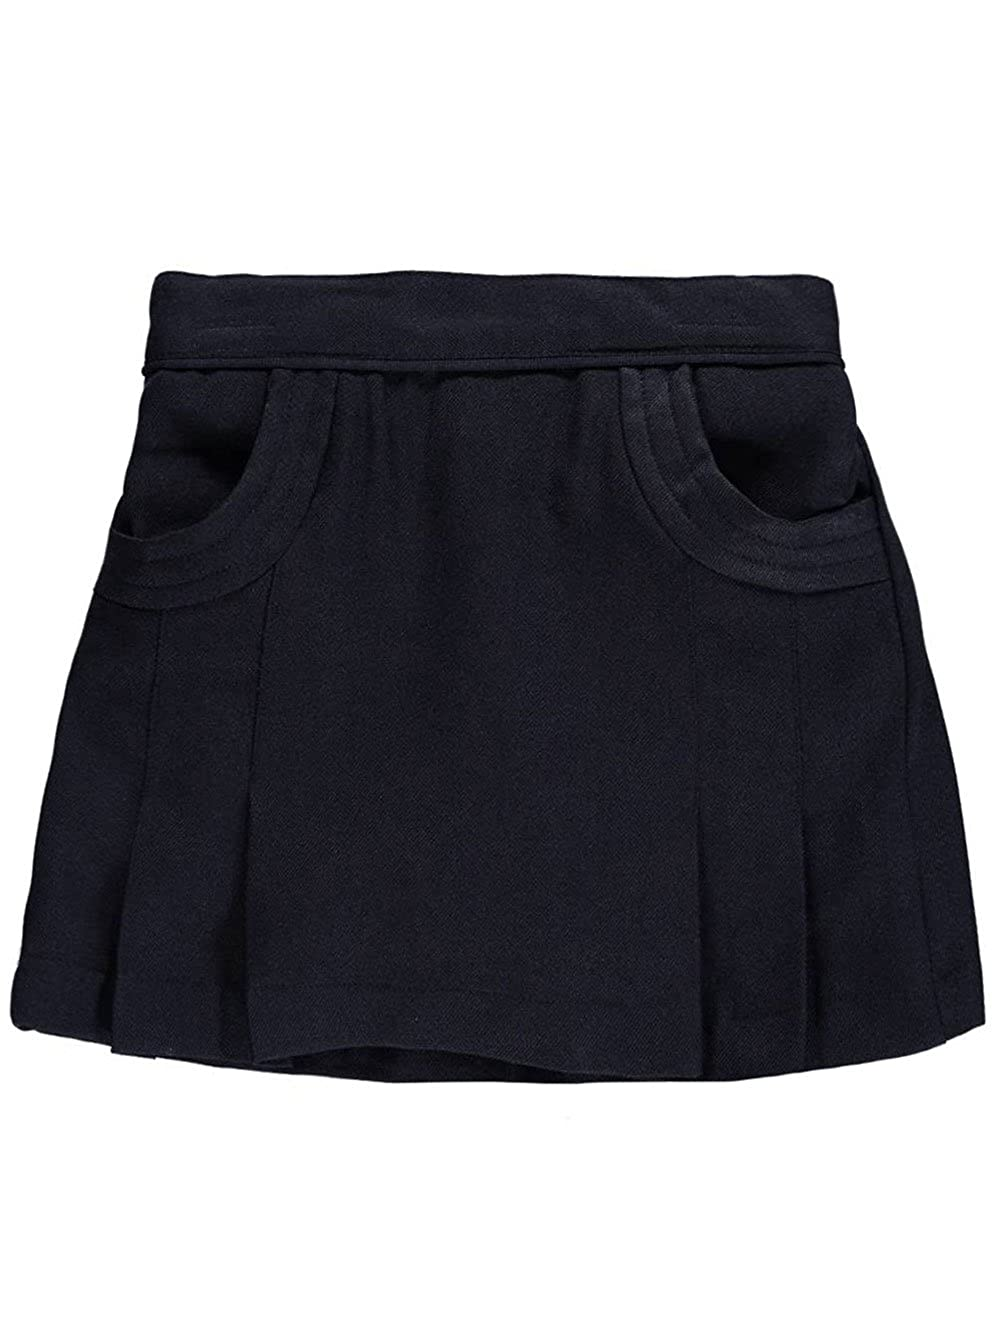 Nautica Little Girls' Toddler Stitched Pocket Scooter Skirt